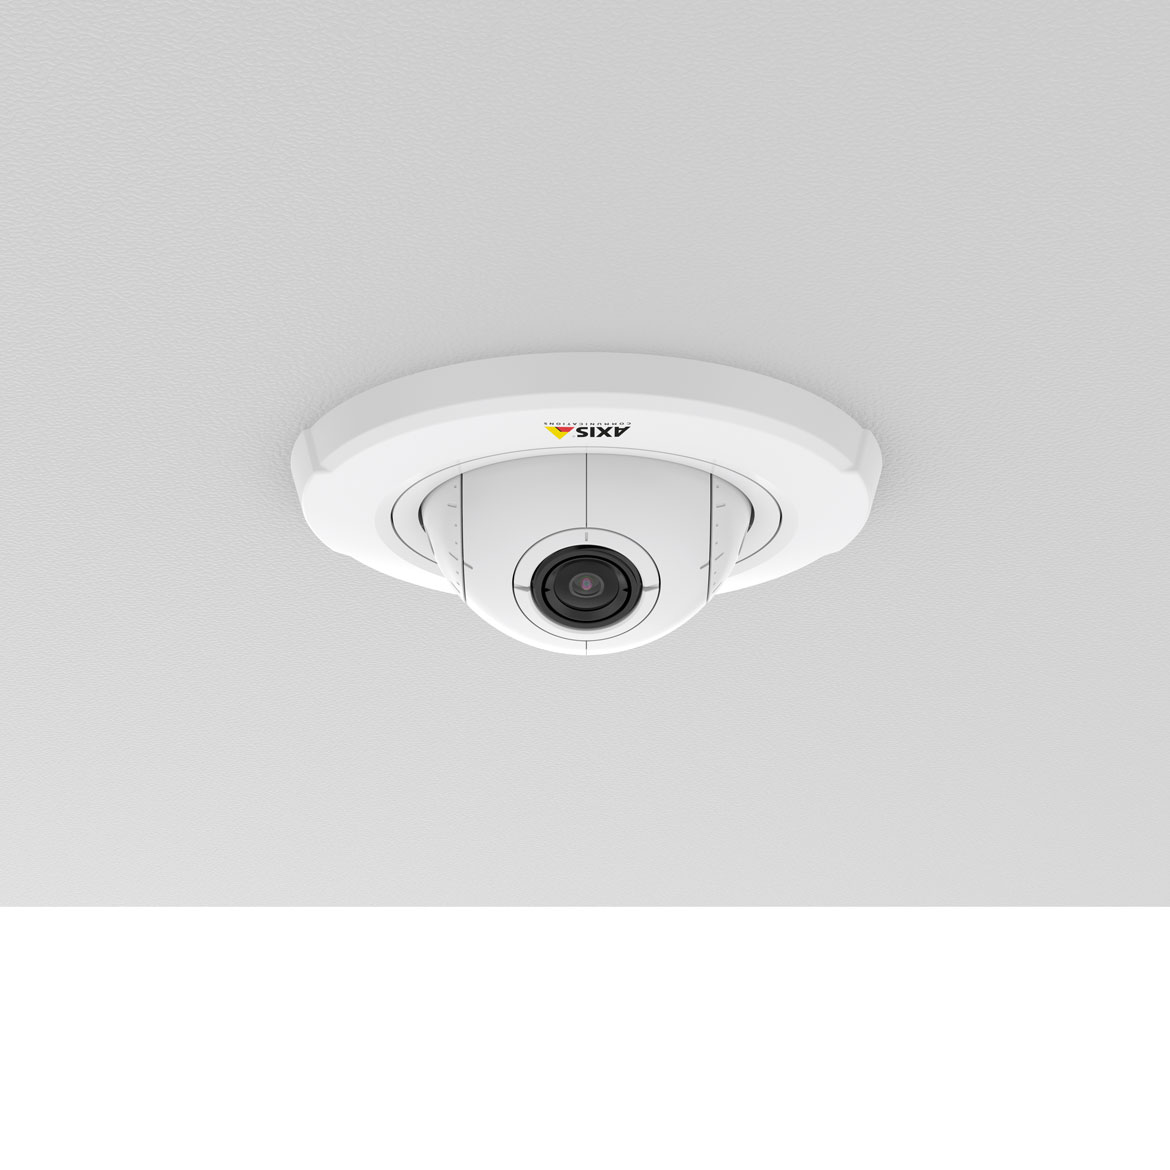 AXIS F4005 mounted in ceiling